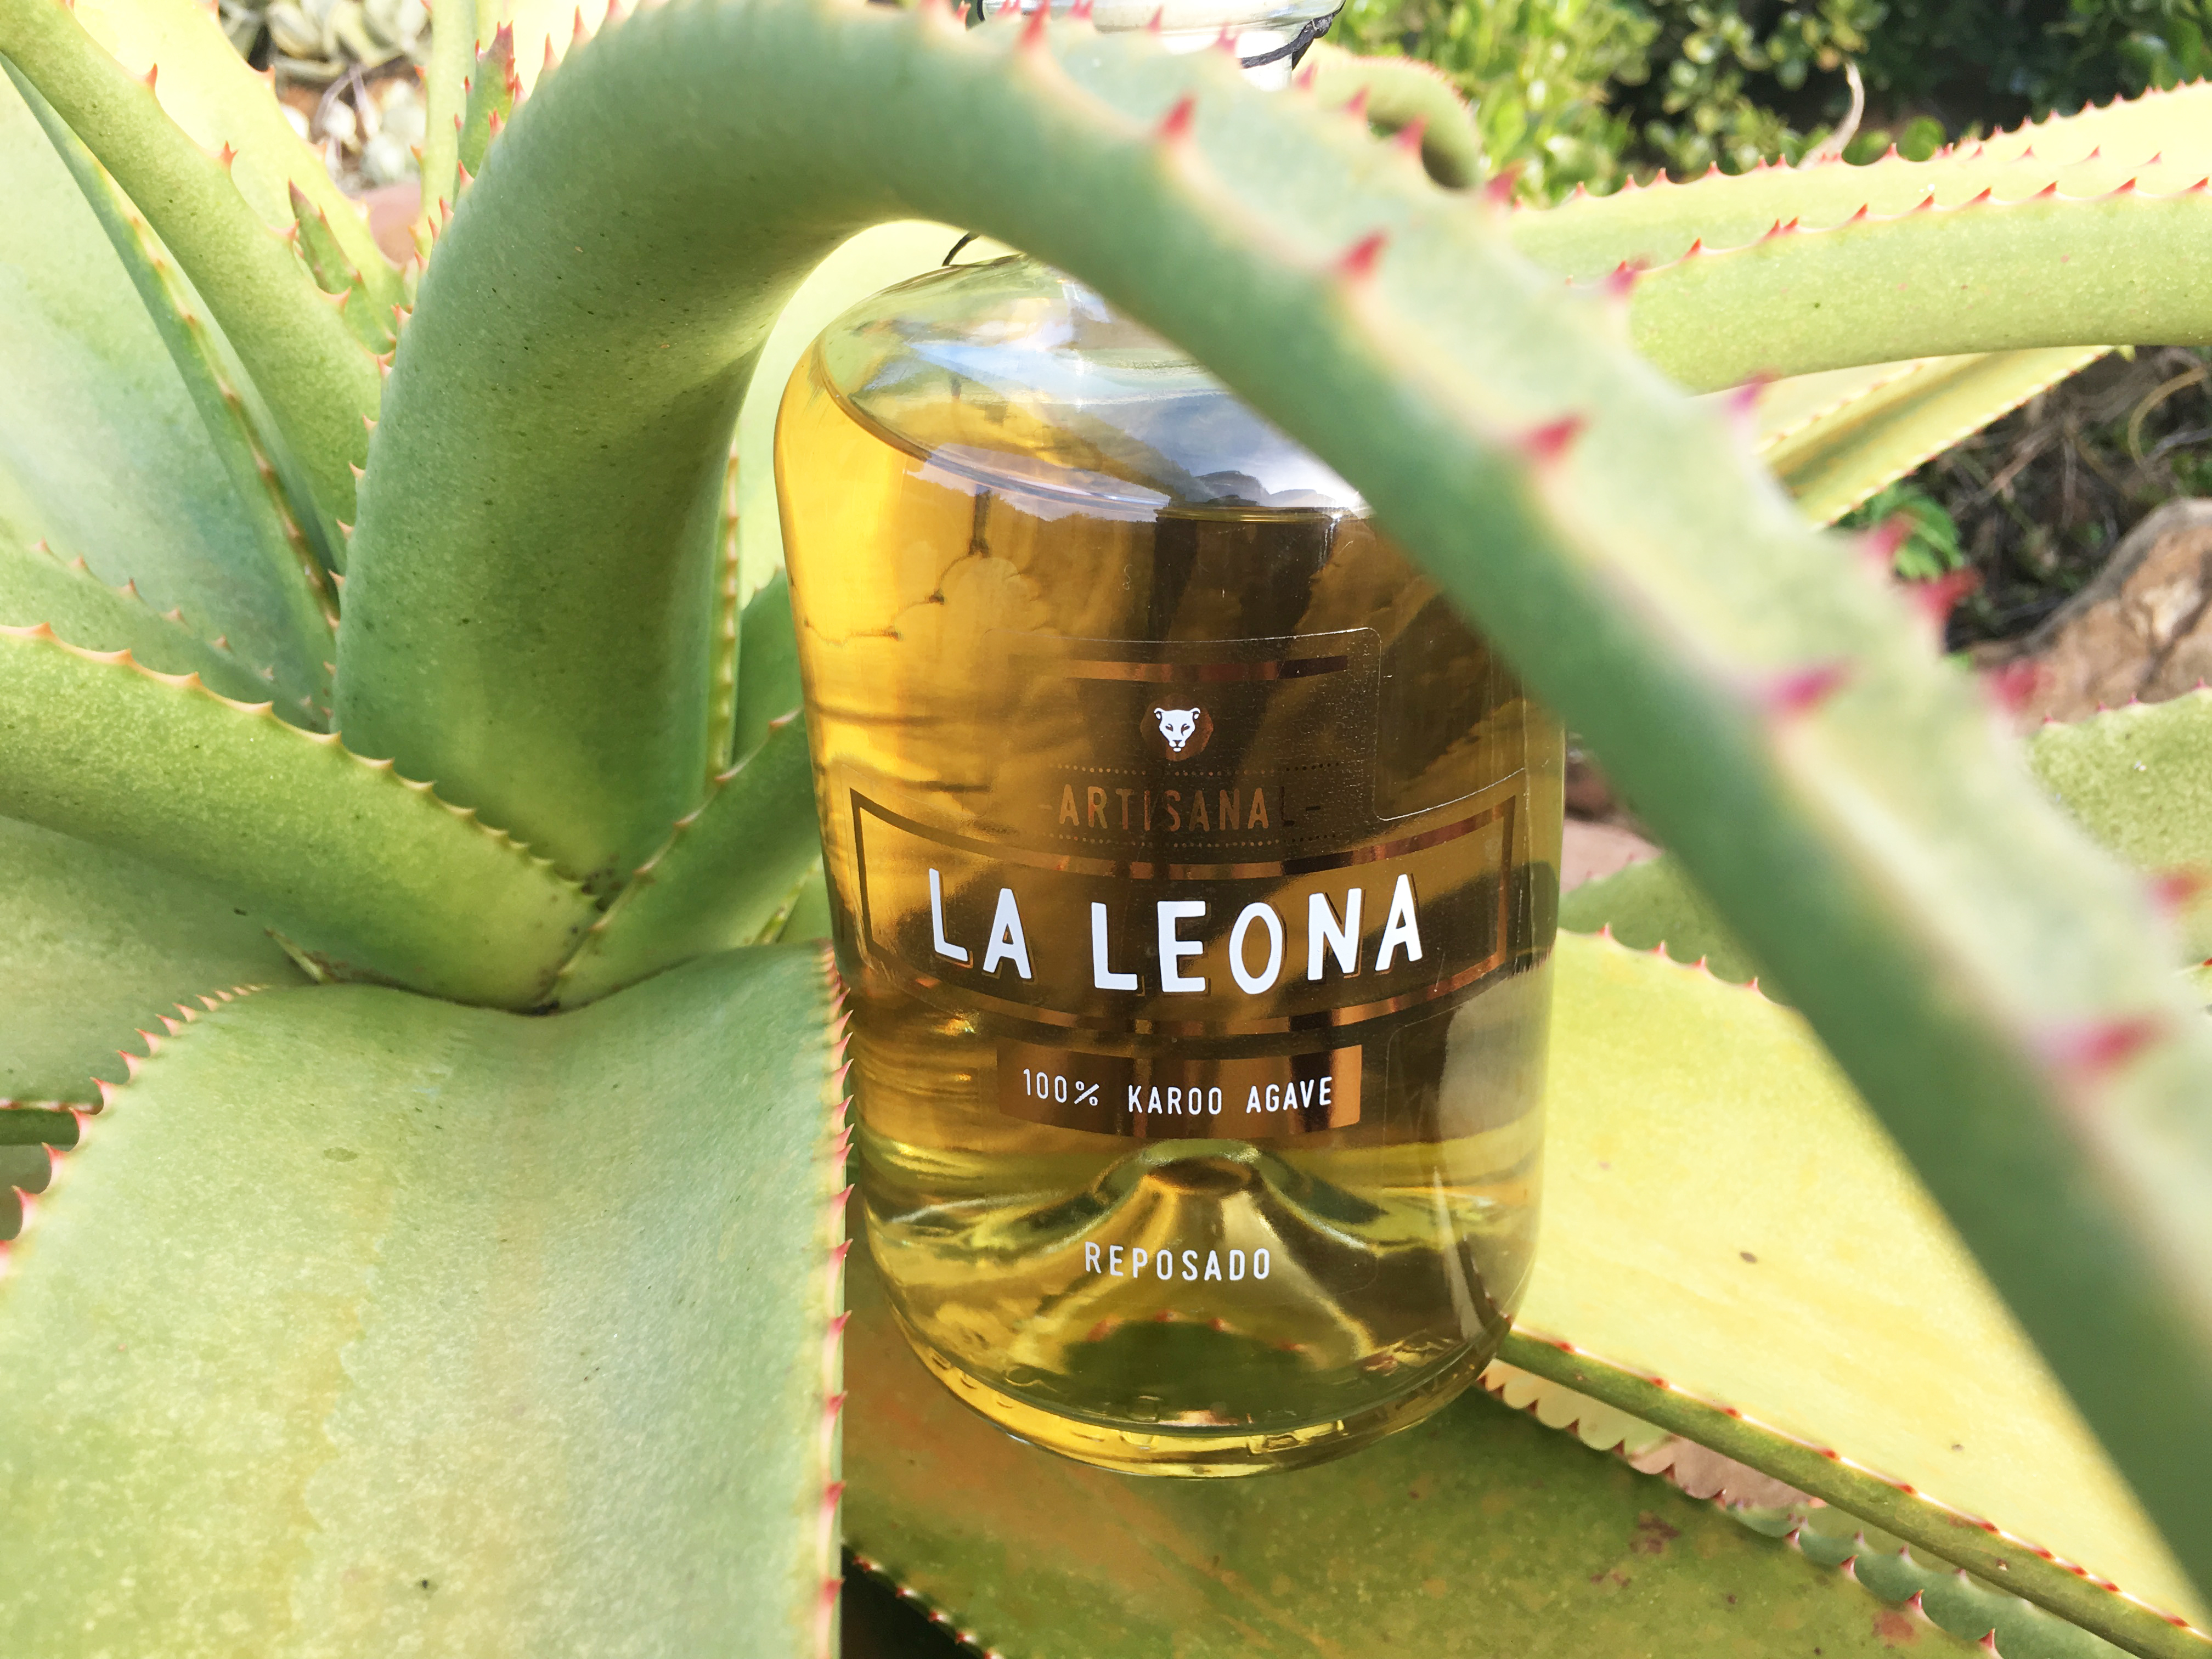 The Social Needia Reviews La Leona Agave Spirit Tequila